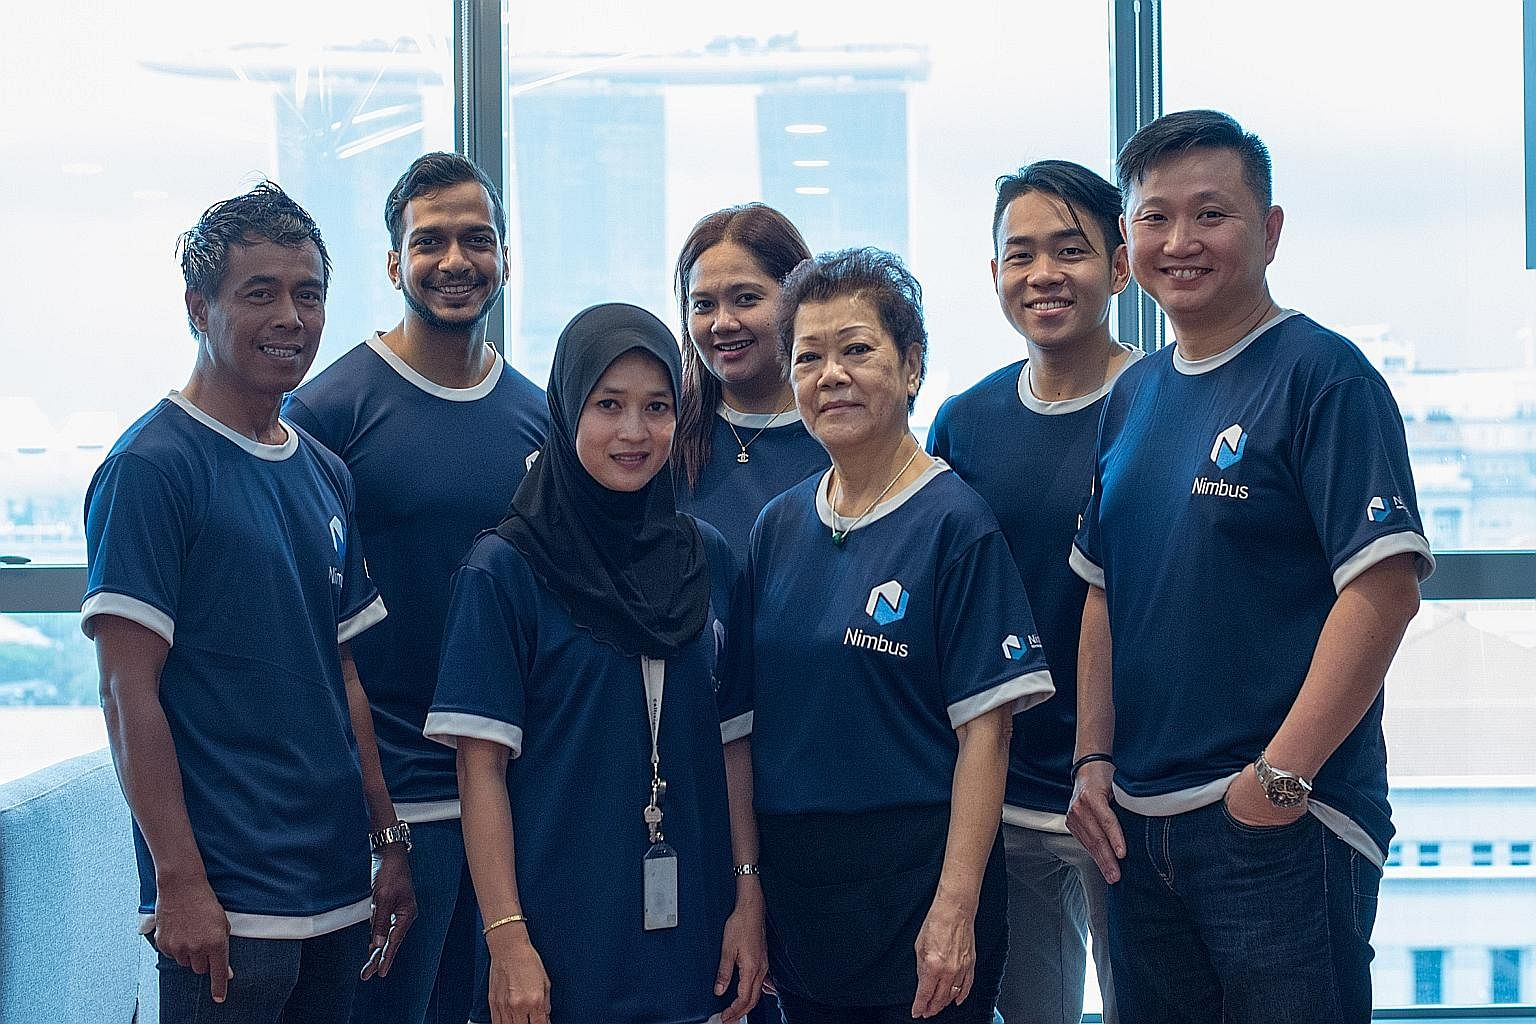 The Nimbus team includes (from left) operations manager Asrin Che Hosni, 51, product lead Fareed Mustakin, 25, cleaning staff member Lisa Latiff, 29, operations executive Sitimurriani Khamis, 41, cleaning staff member Wong Yuet Peng, 65, chief execut